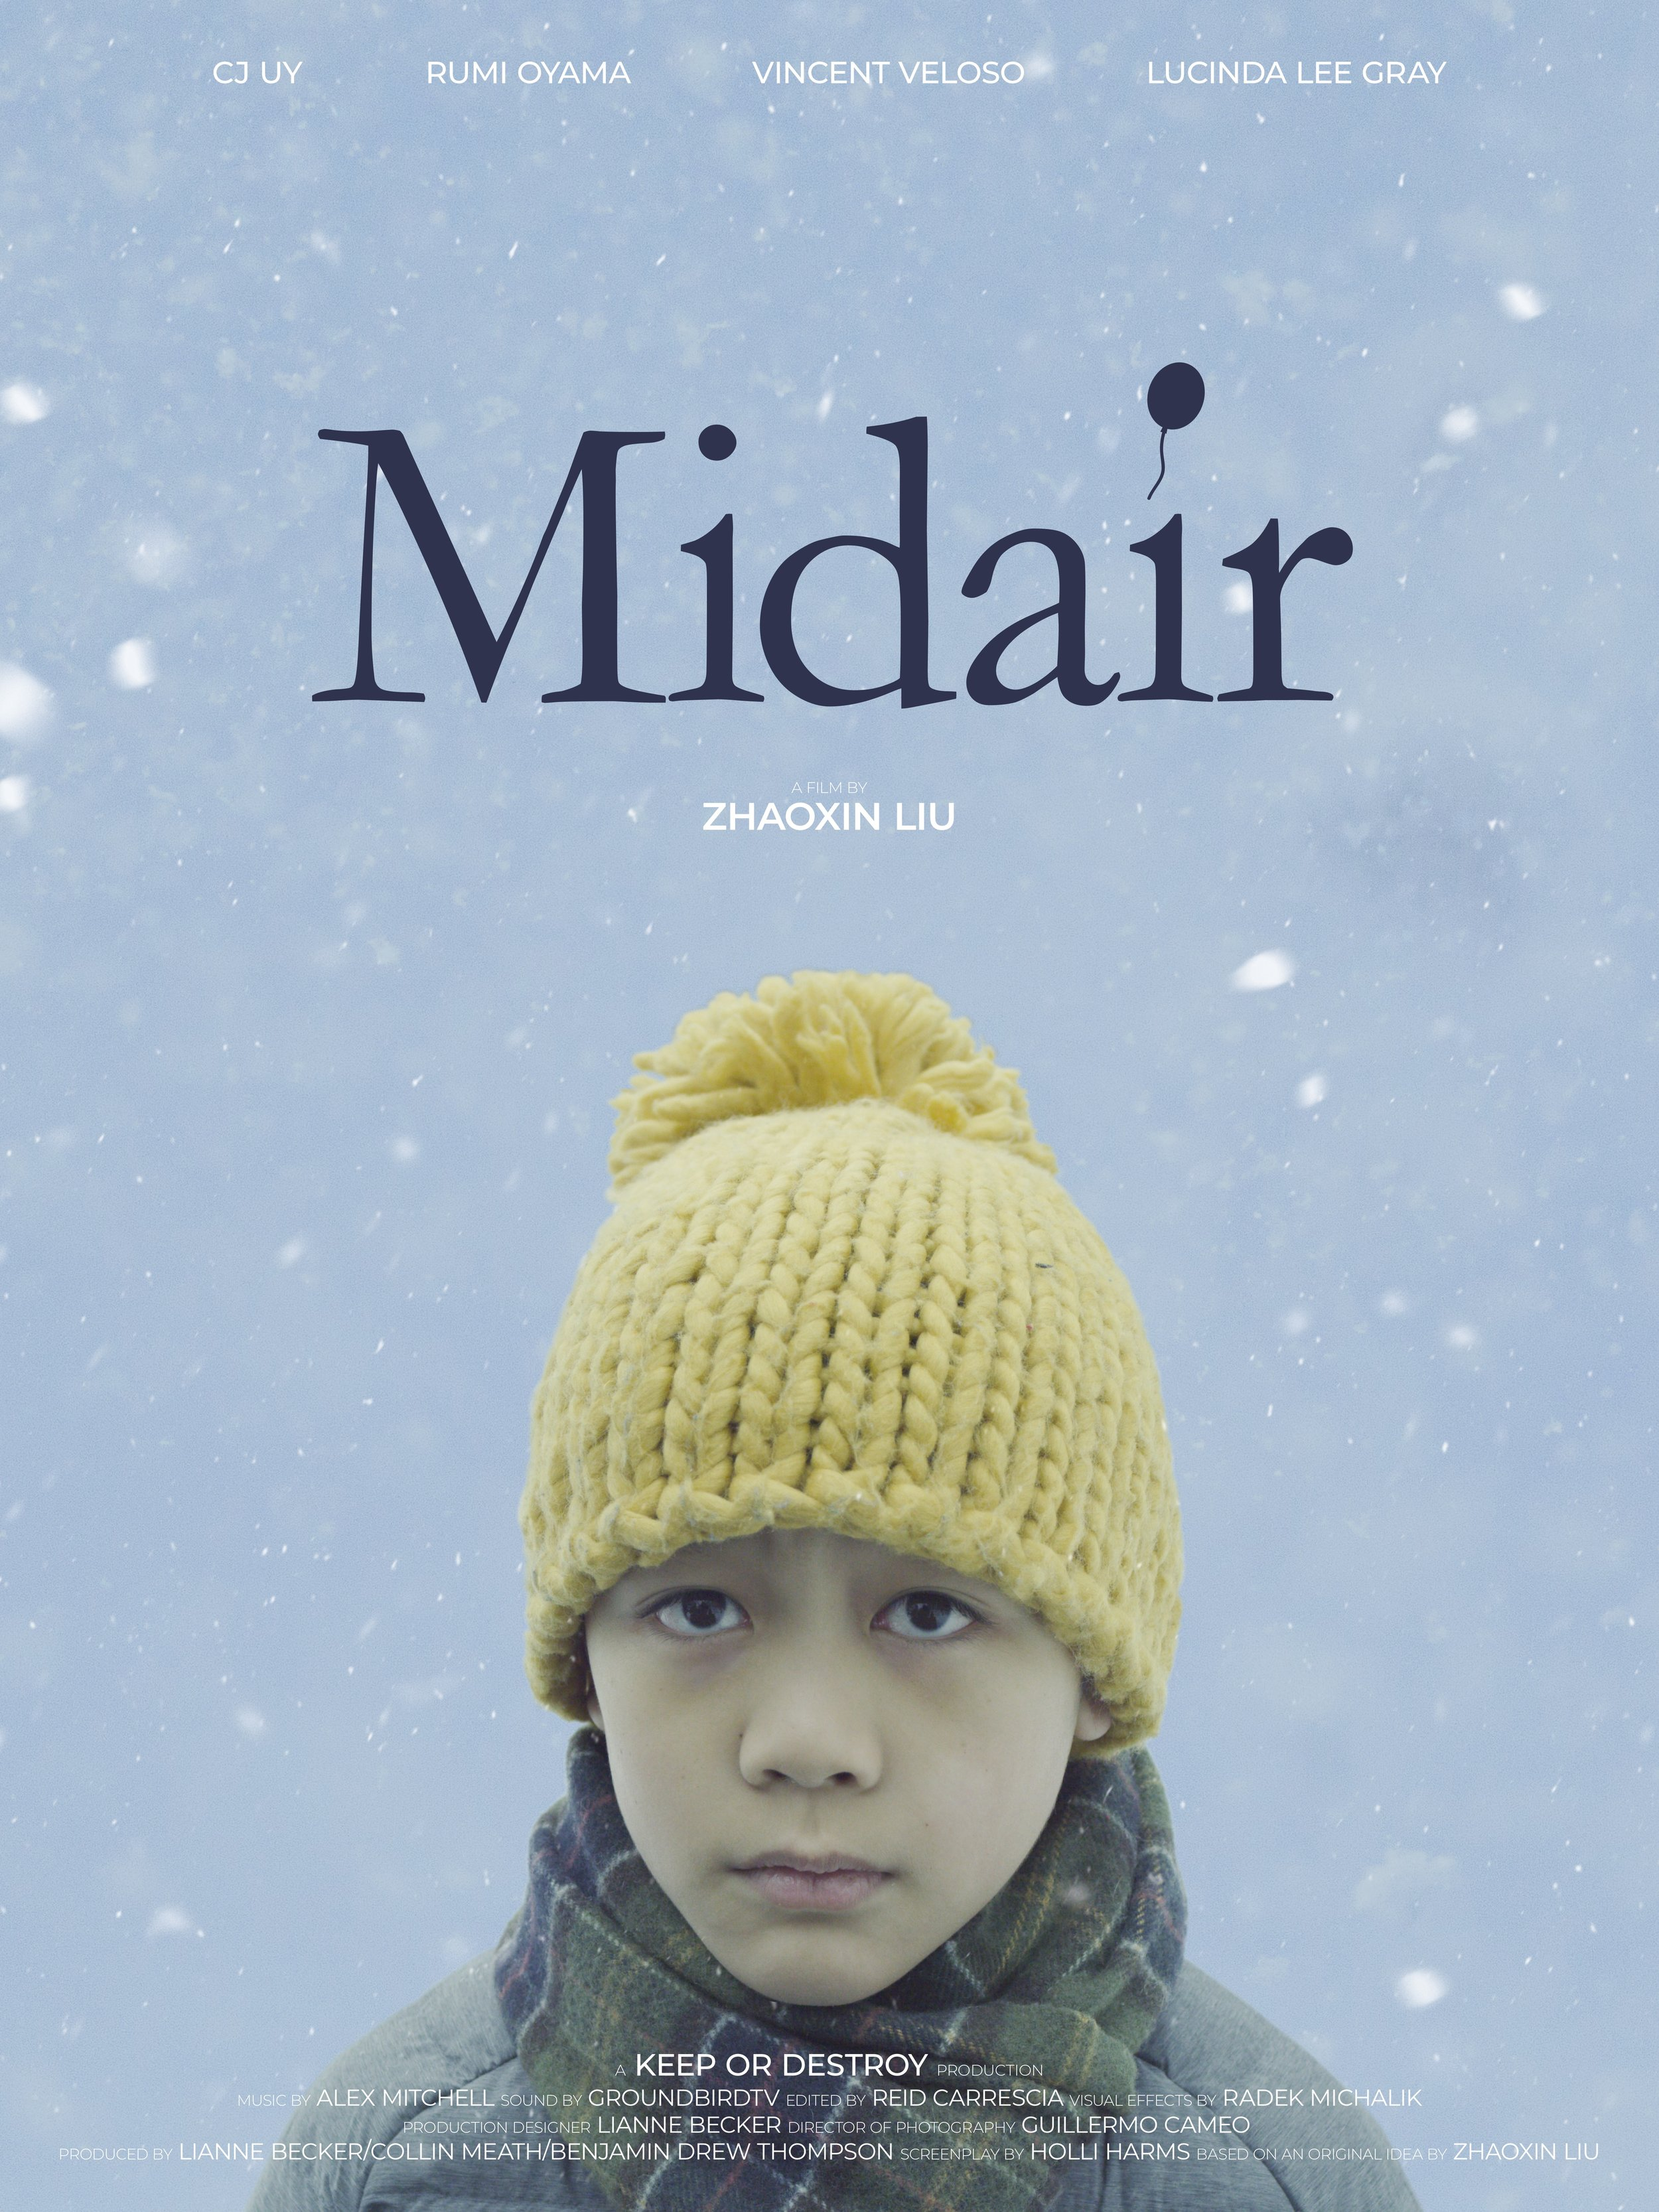 Midair - Currently in post-production. In this short drama a young boy follows a black balloon around his neighborhood on the day his father passes away.